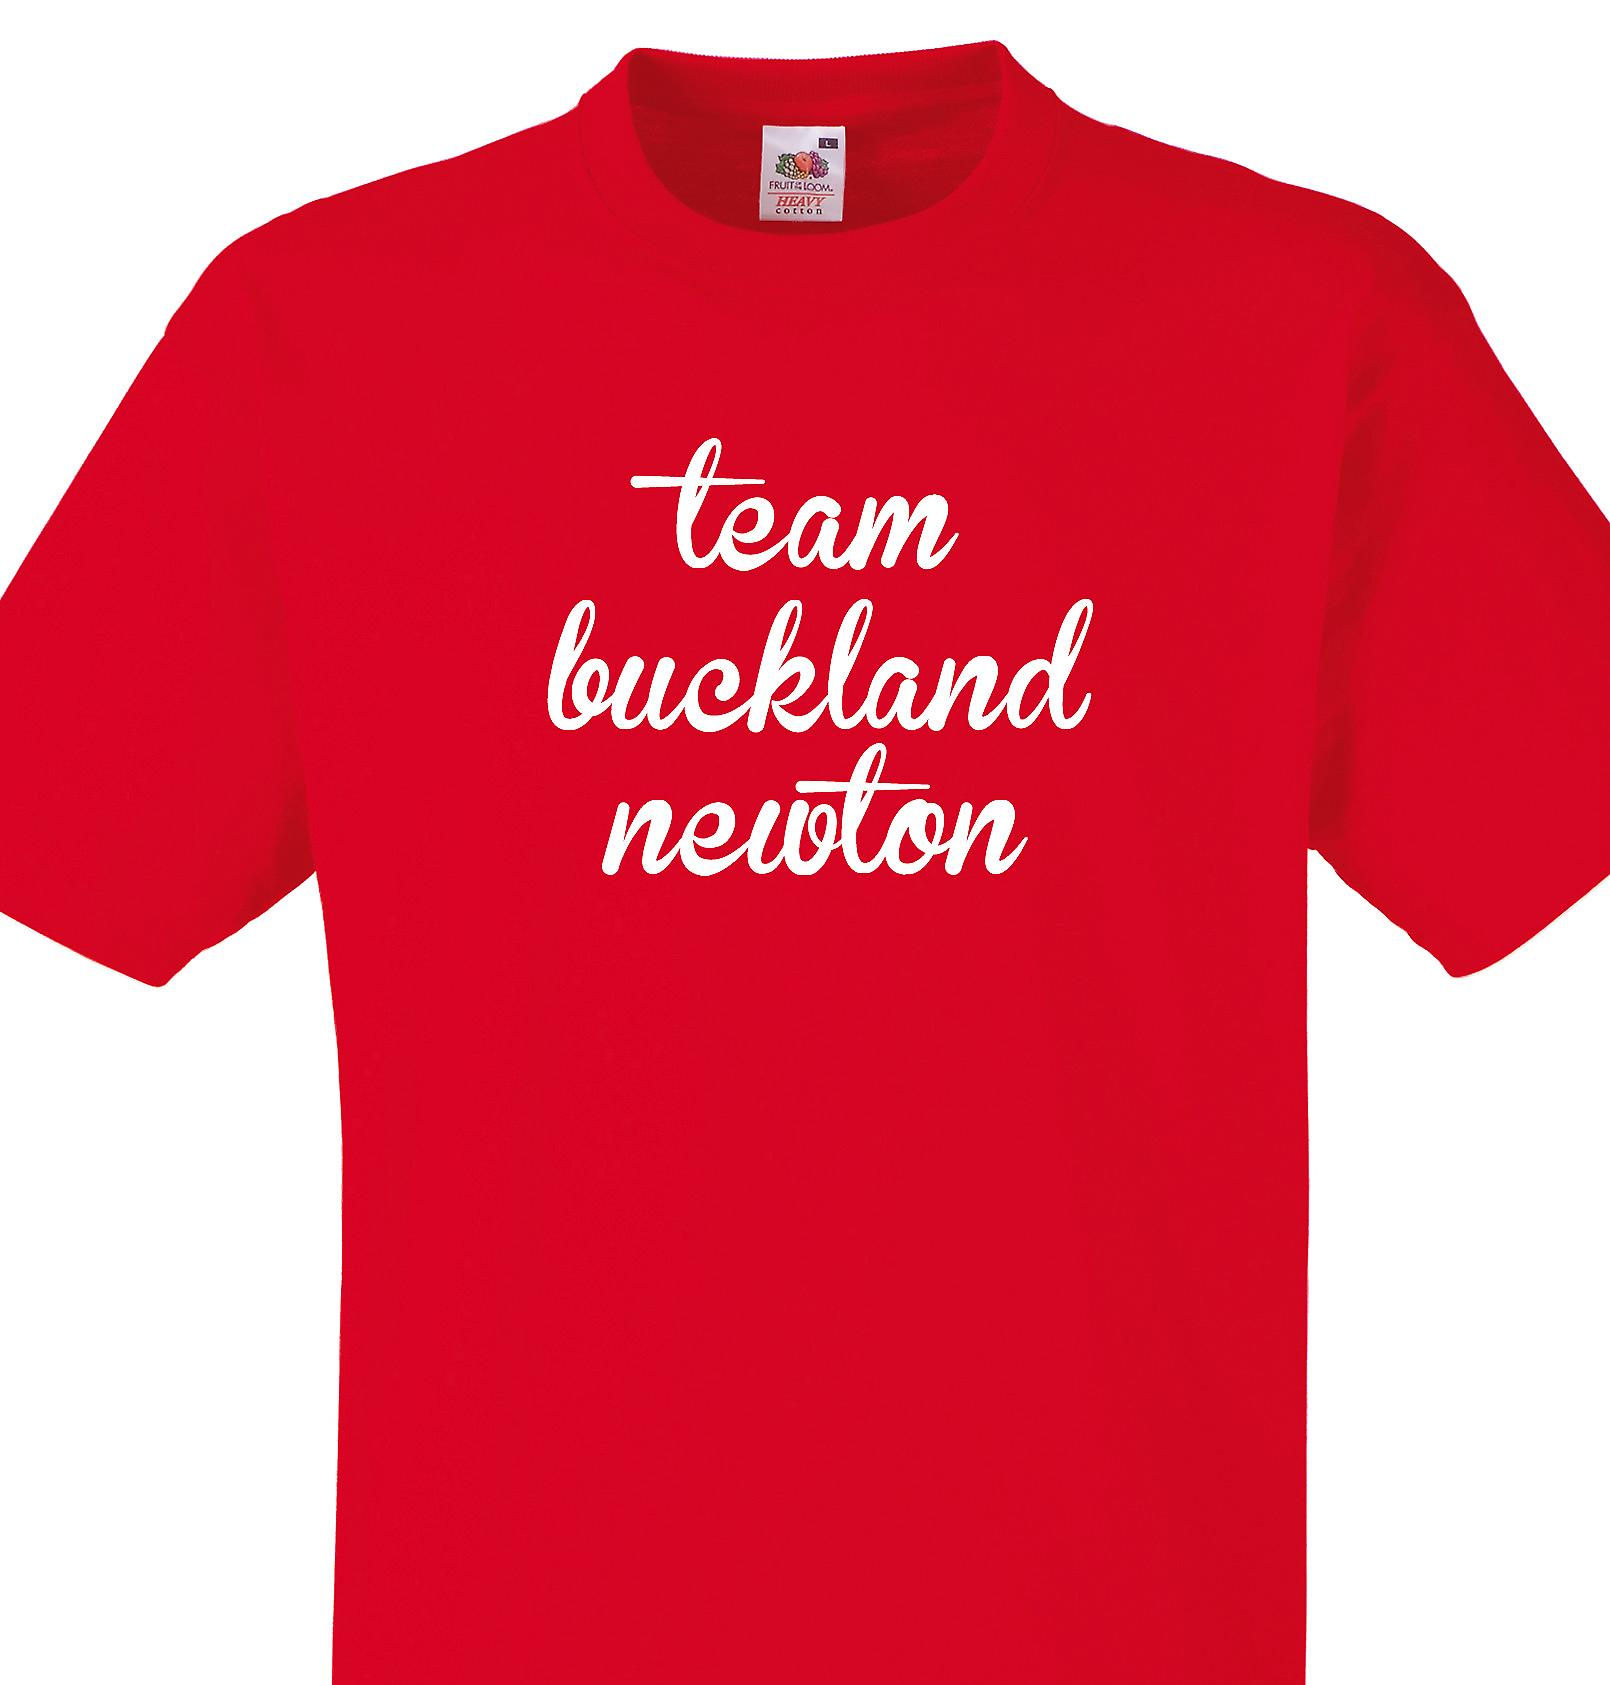 Team Buckland newton Red T shirt